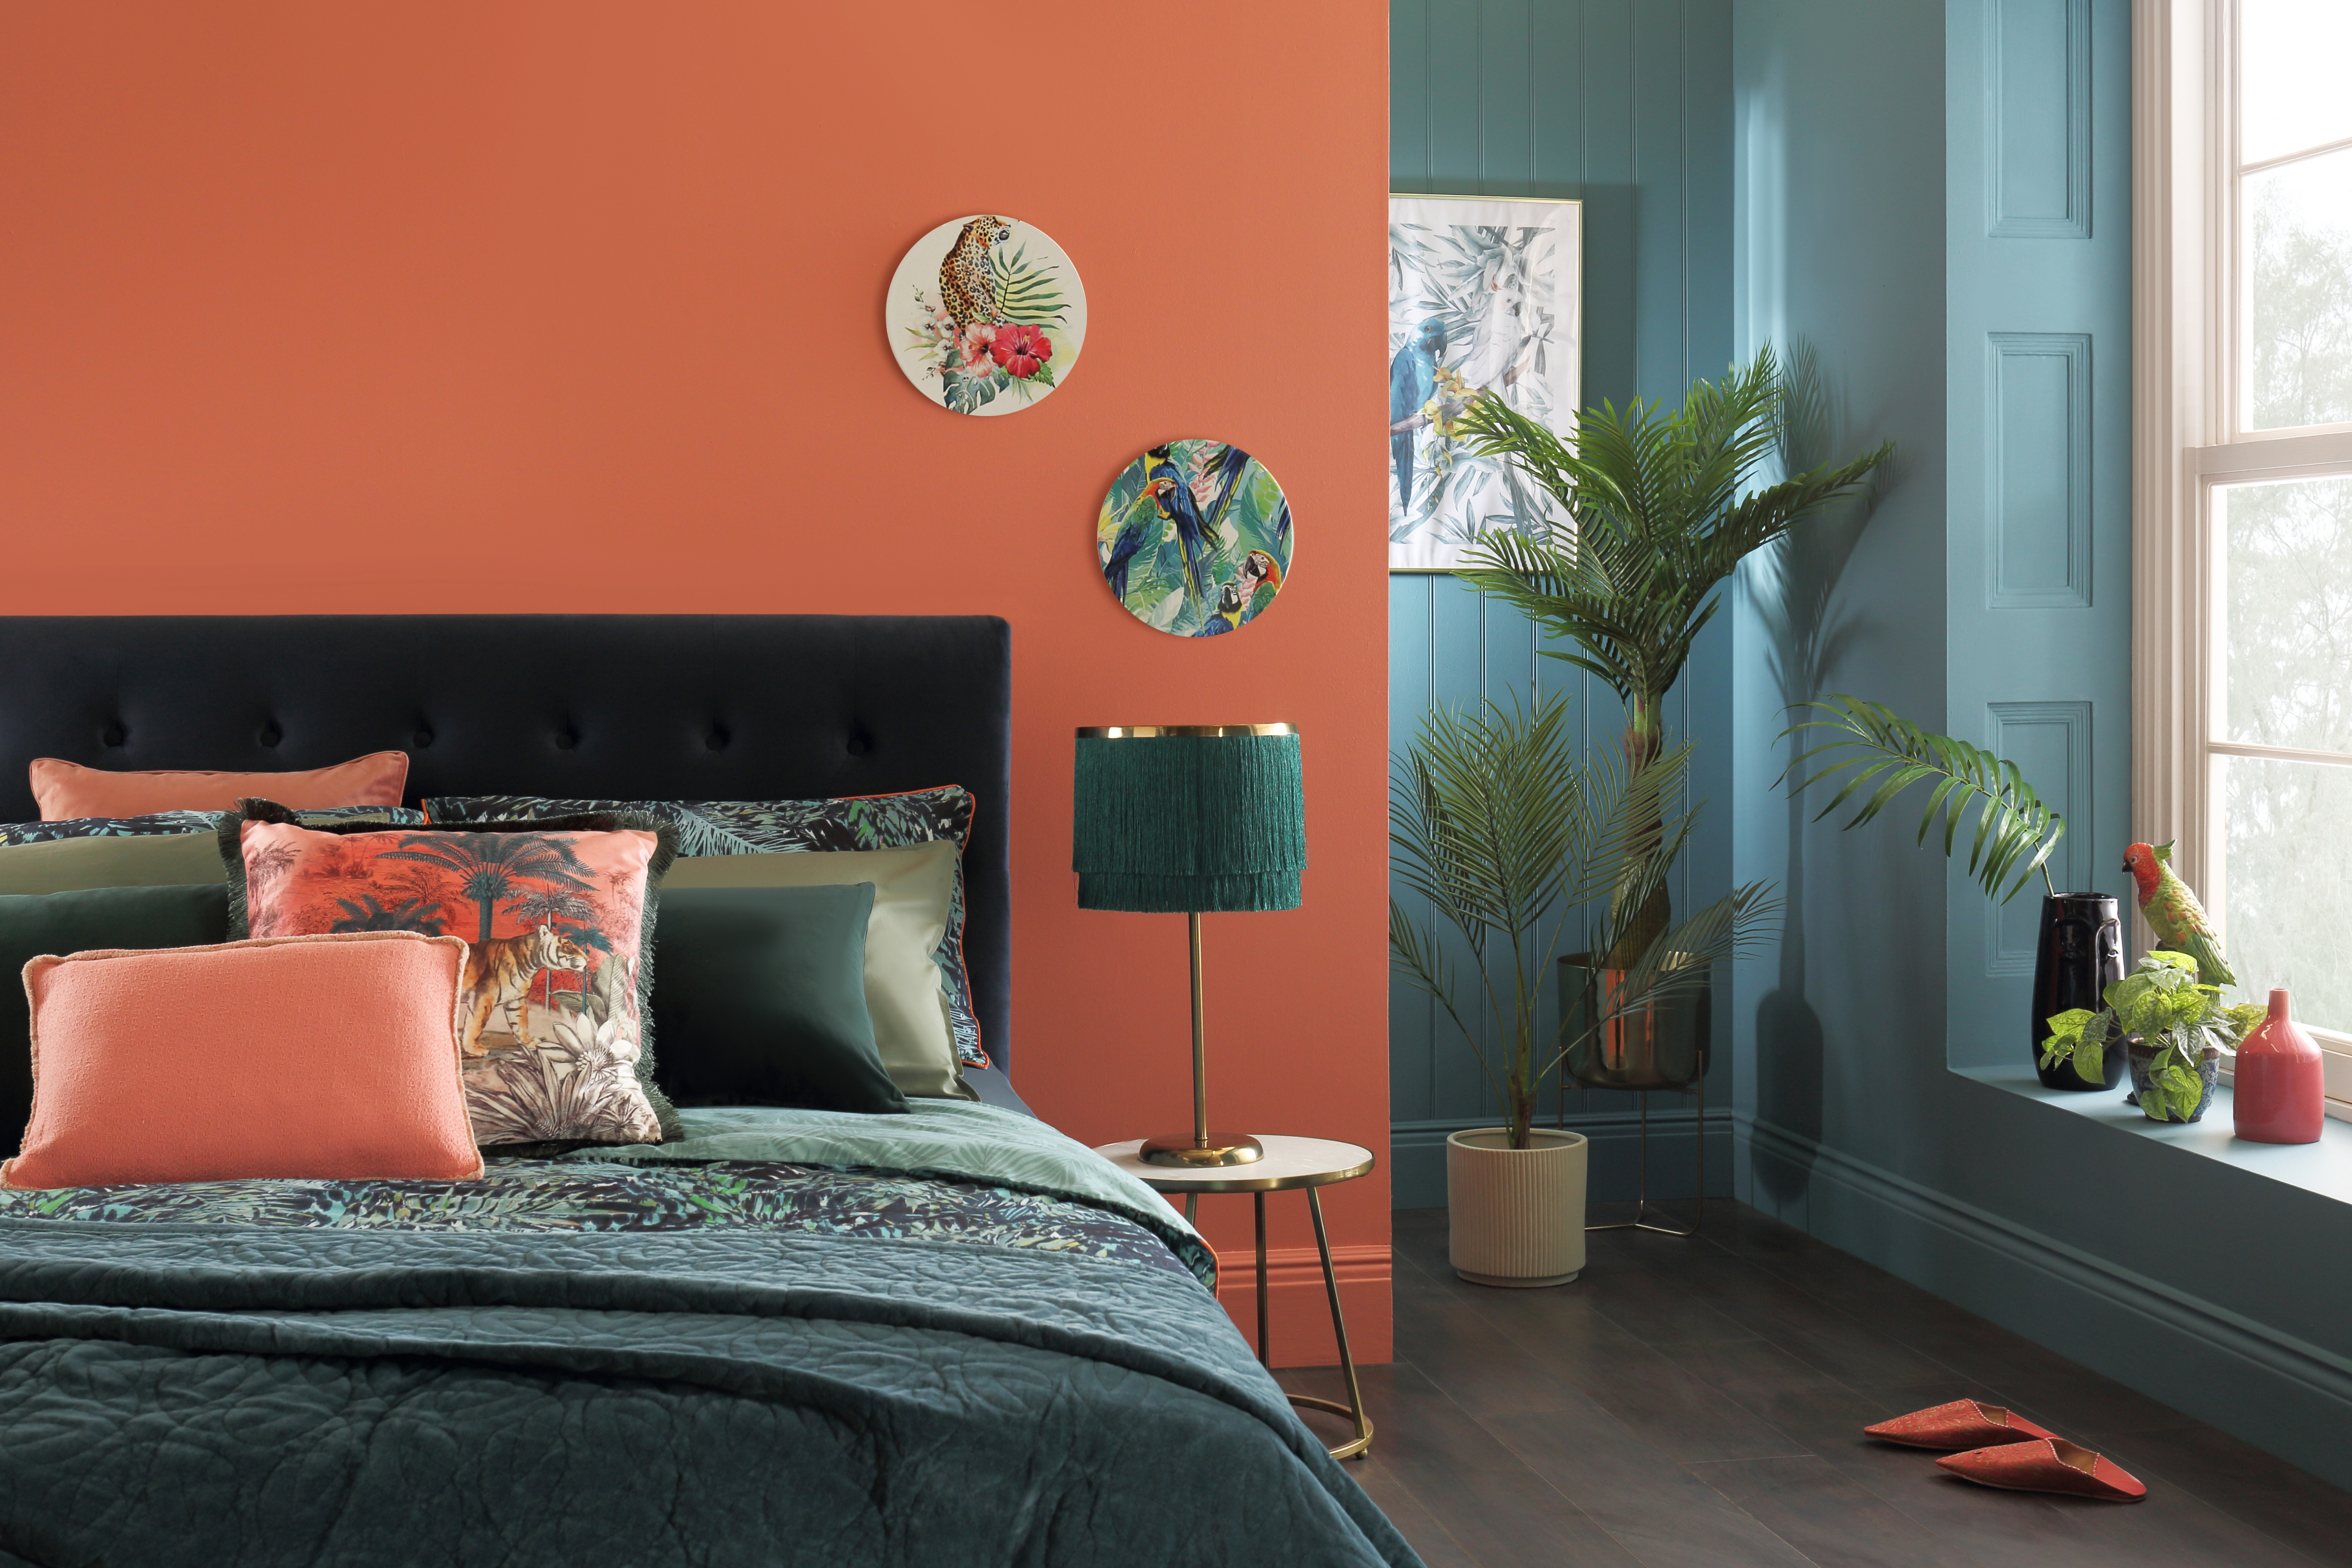 2 Ways to Style the Tropical Look Get Ways Tropical Bedroom Decorating Ideas on exotic bedroom ideas, tropical master bedroom ideas, tropical kitchen ideas, bright wall art ideas, tropical style bedroom, tropical romantic bedroom ideas, tropical bedding ideas, tropical bedroom color ideas, tropical diy ideas, beach bedroom ideas, tropical bedroom decor, tropical bedroom curtains, over bed wall art ideas, tropical bathroom ideas, tropical bedroom paint, tropical room ideas, adult safari themed bedroom ideas, vintage girl bedroom ideas, tropical bedroom design, tropical furniture ideas,